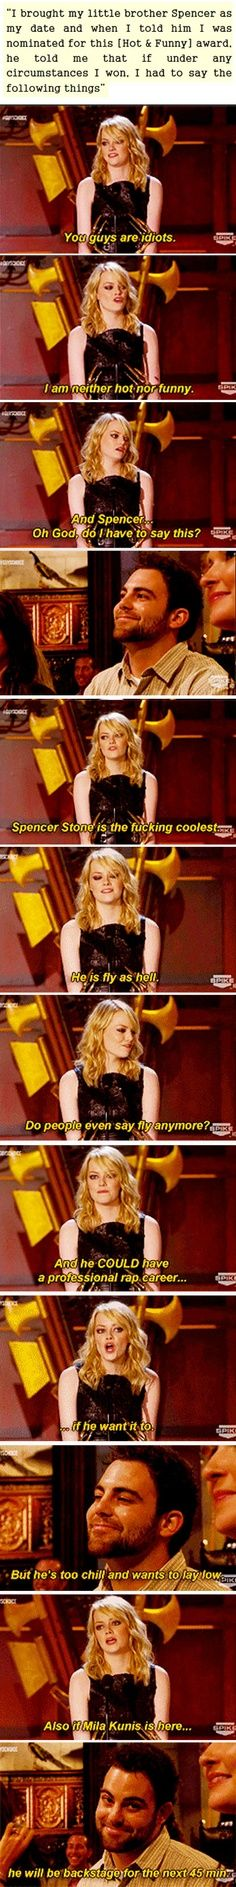 Emma Stone's Hot and Funny award speech. Freaking hilarious